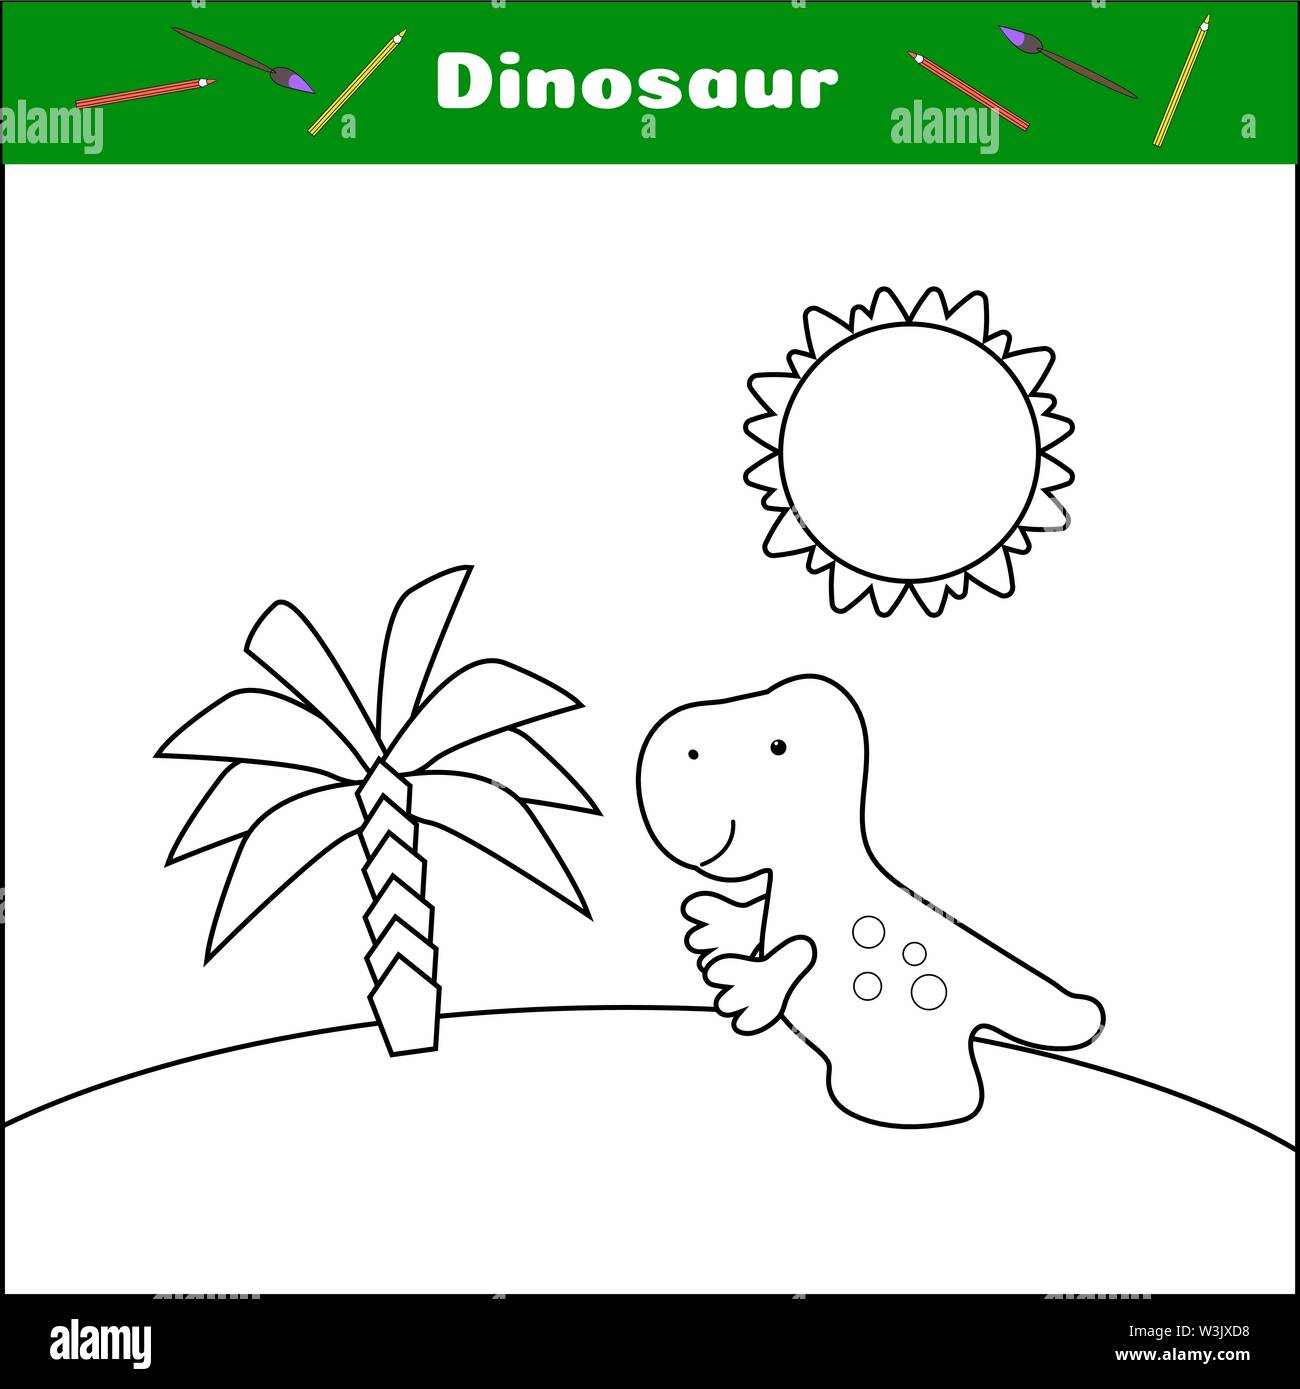 Coloring with dino. Print this page. Dinosaur, palm and sun. A simple worksheet for preschoolers. Tyrannosaurus cartoon character. Funny prehistoric animal. vector illustration. Educational card game. Leisure for children Stock Vector